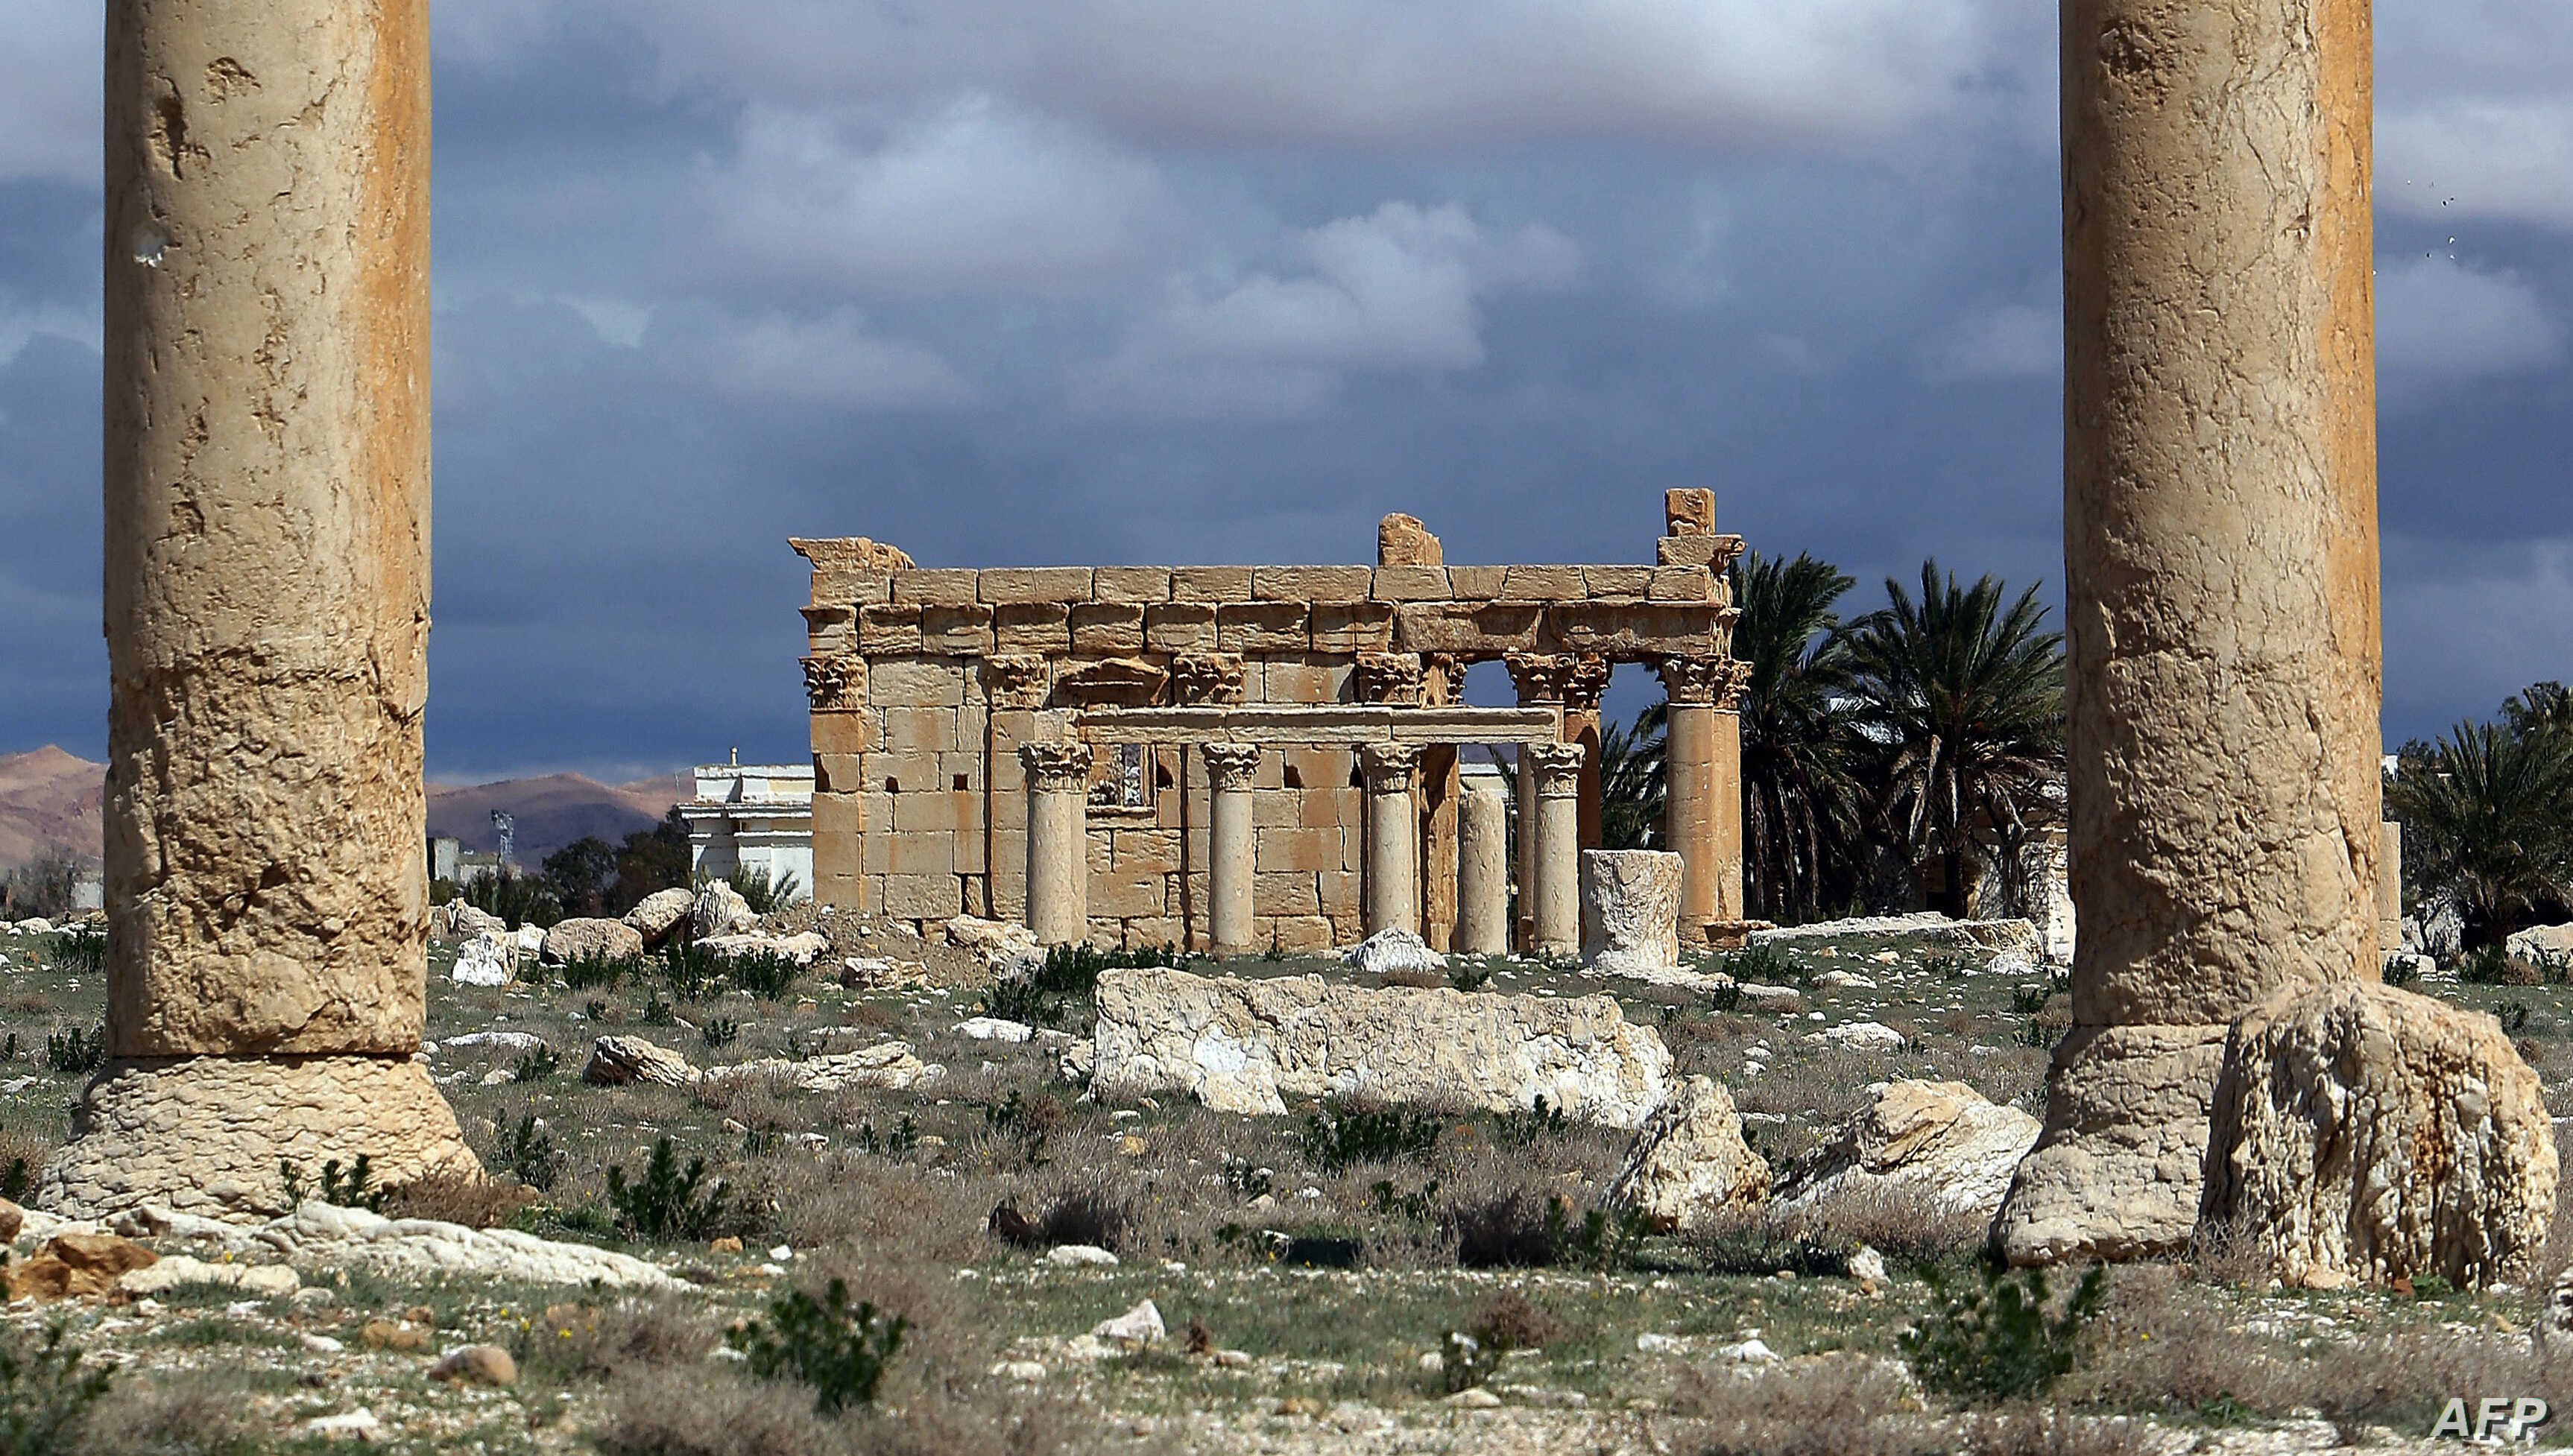 FILE - Temple of Baal Shamin seen through two Corinthian columns in the ancient oasis city of Palmyra, Syria.